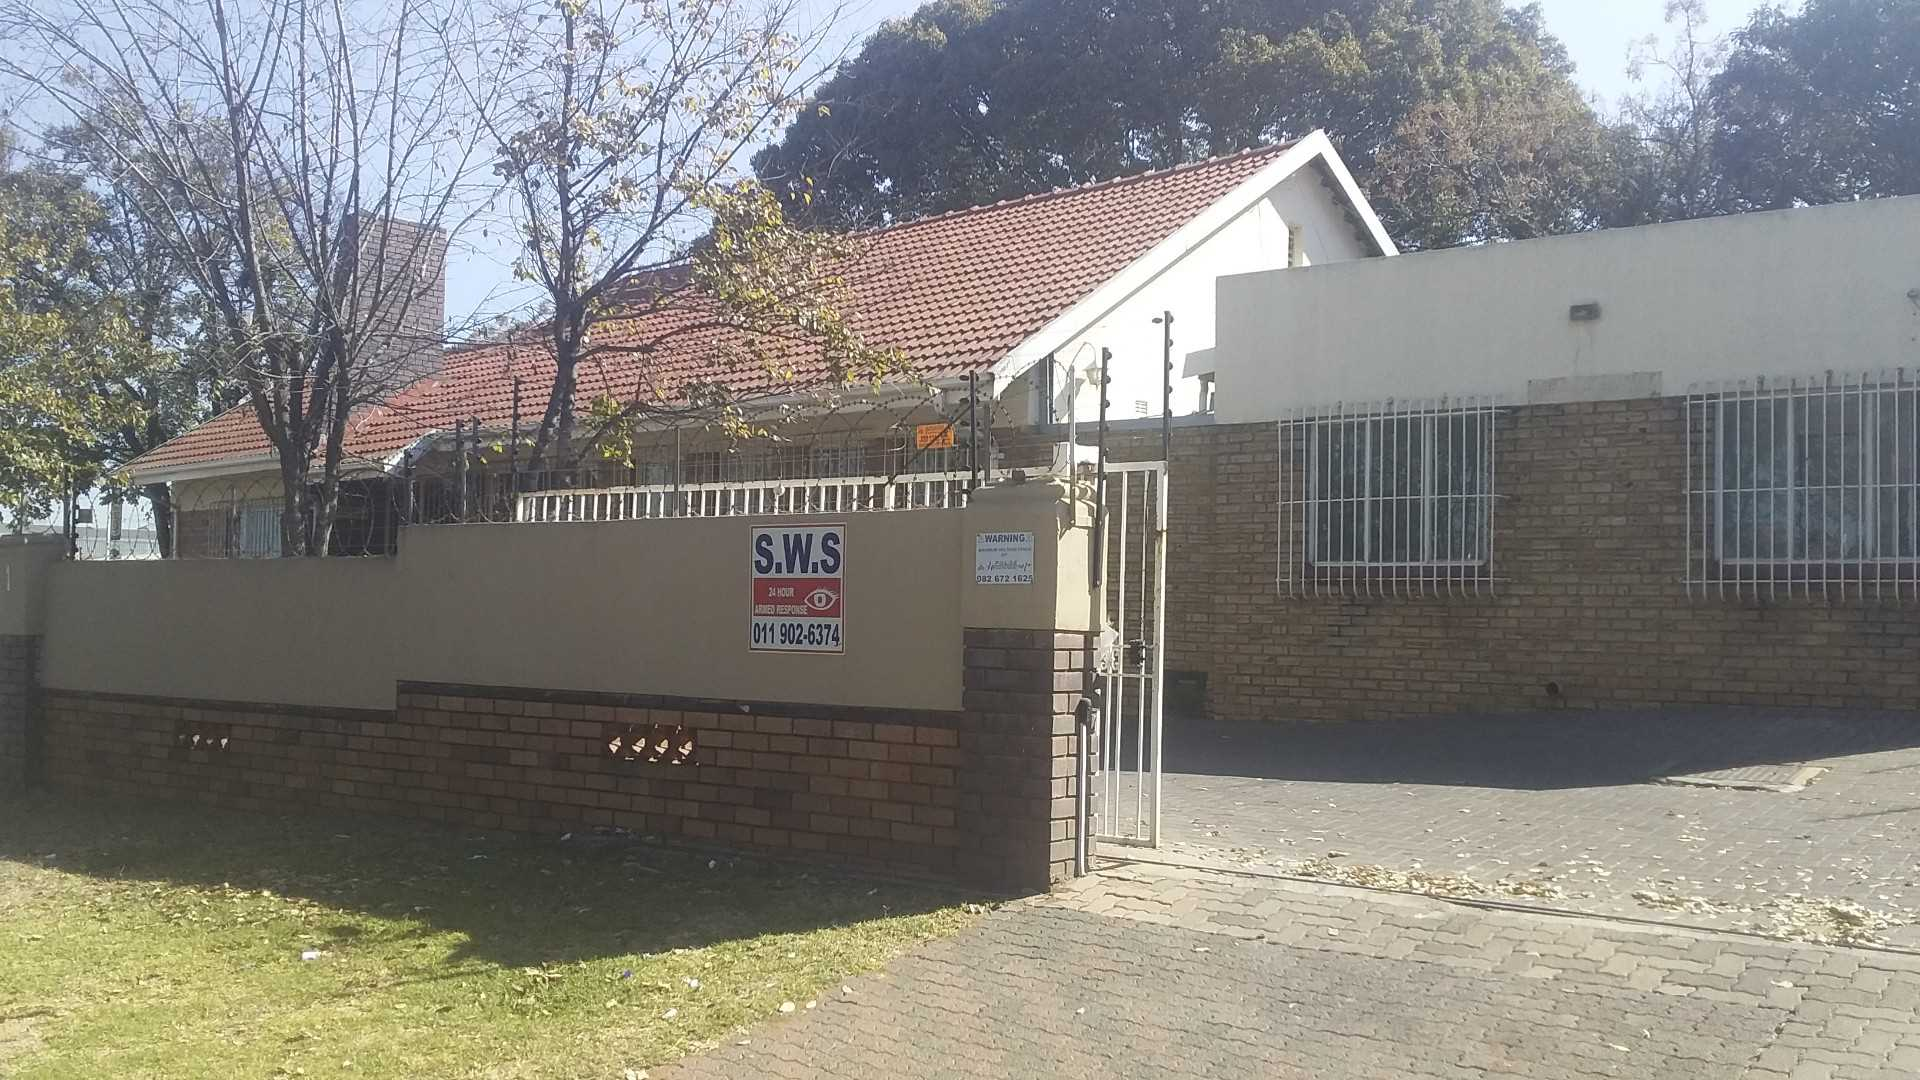 Offices situated on corner of busy main road in Lambton.  Across from busy shopping centres and fast food outlets, petrol stations. Very visible location for advertising your business.